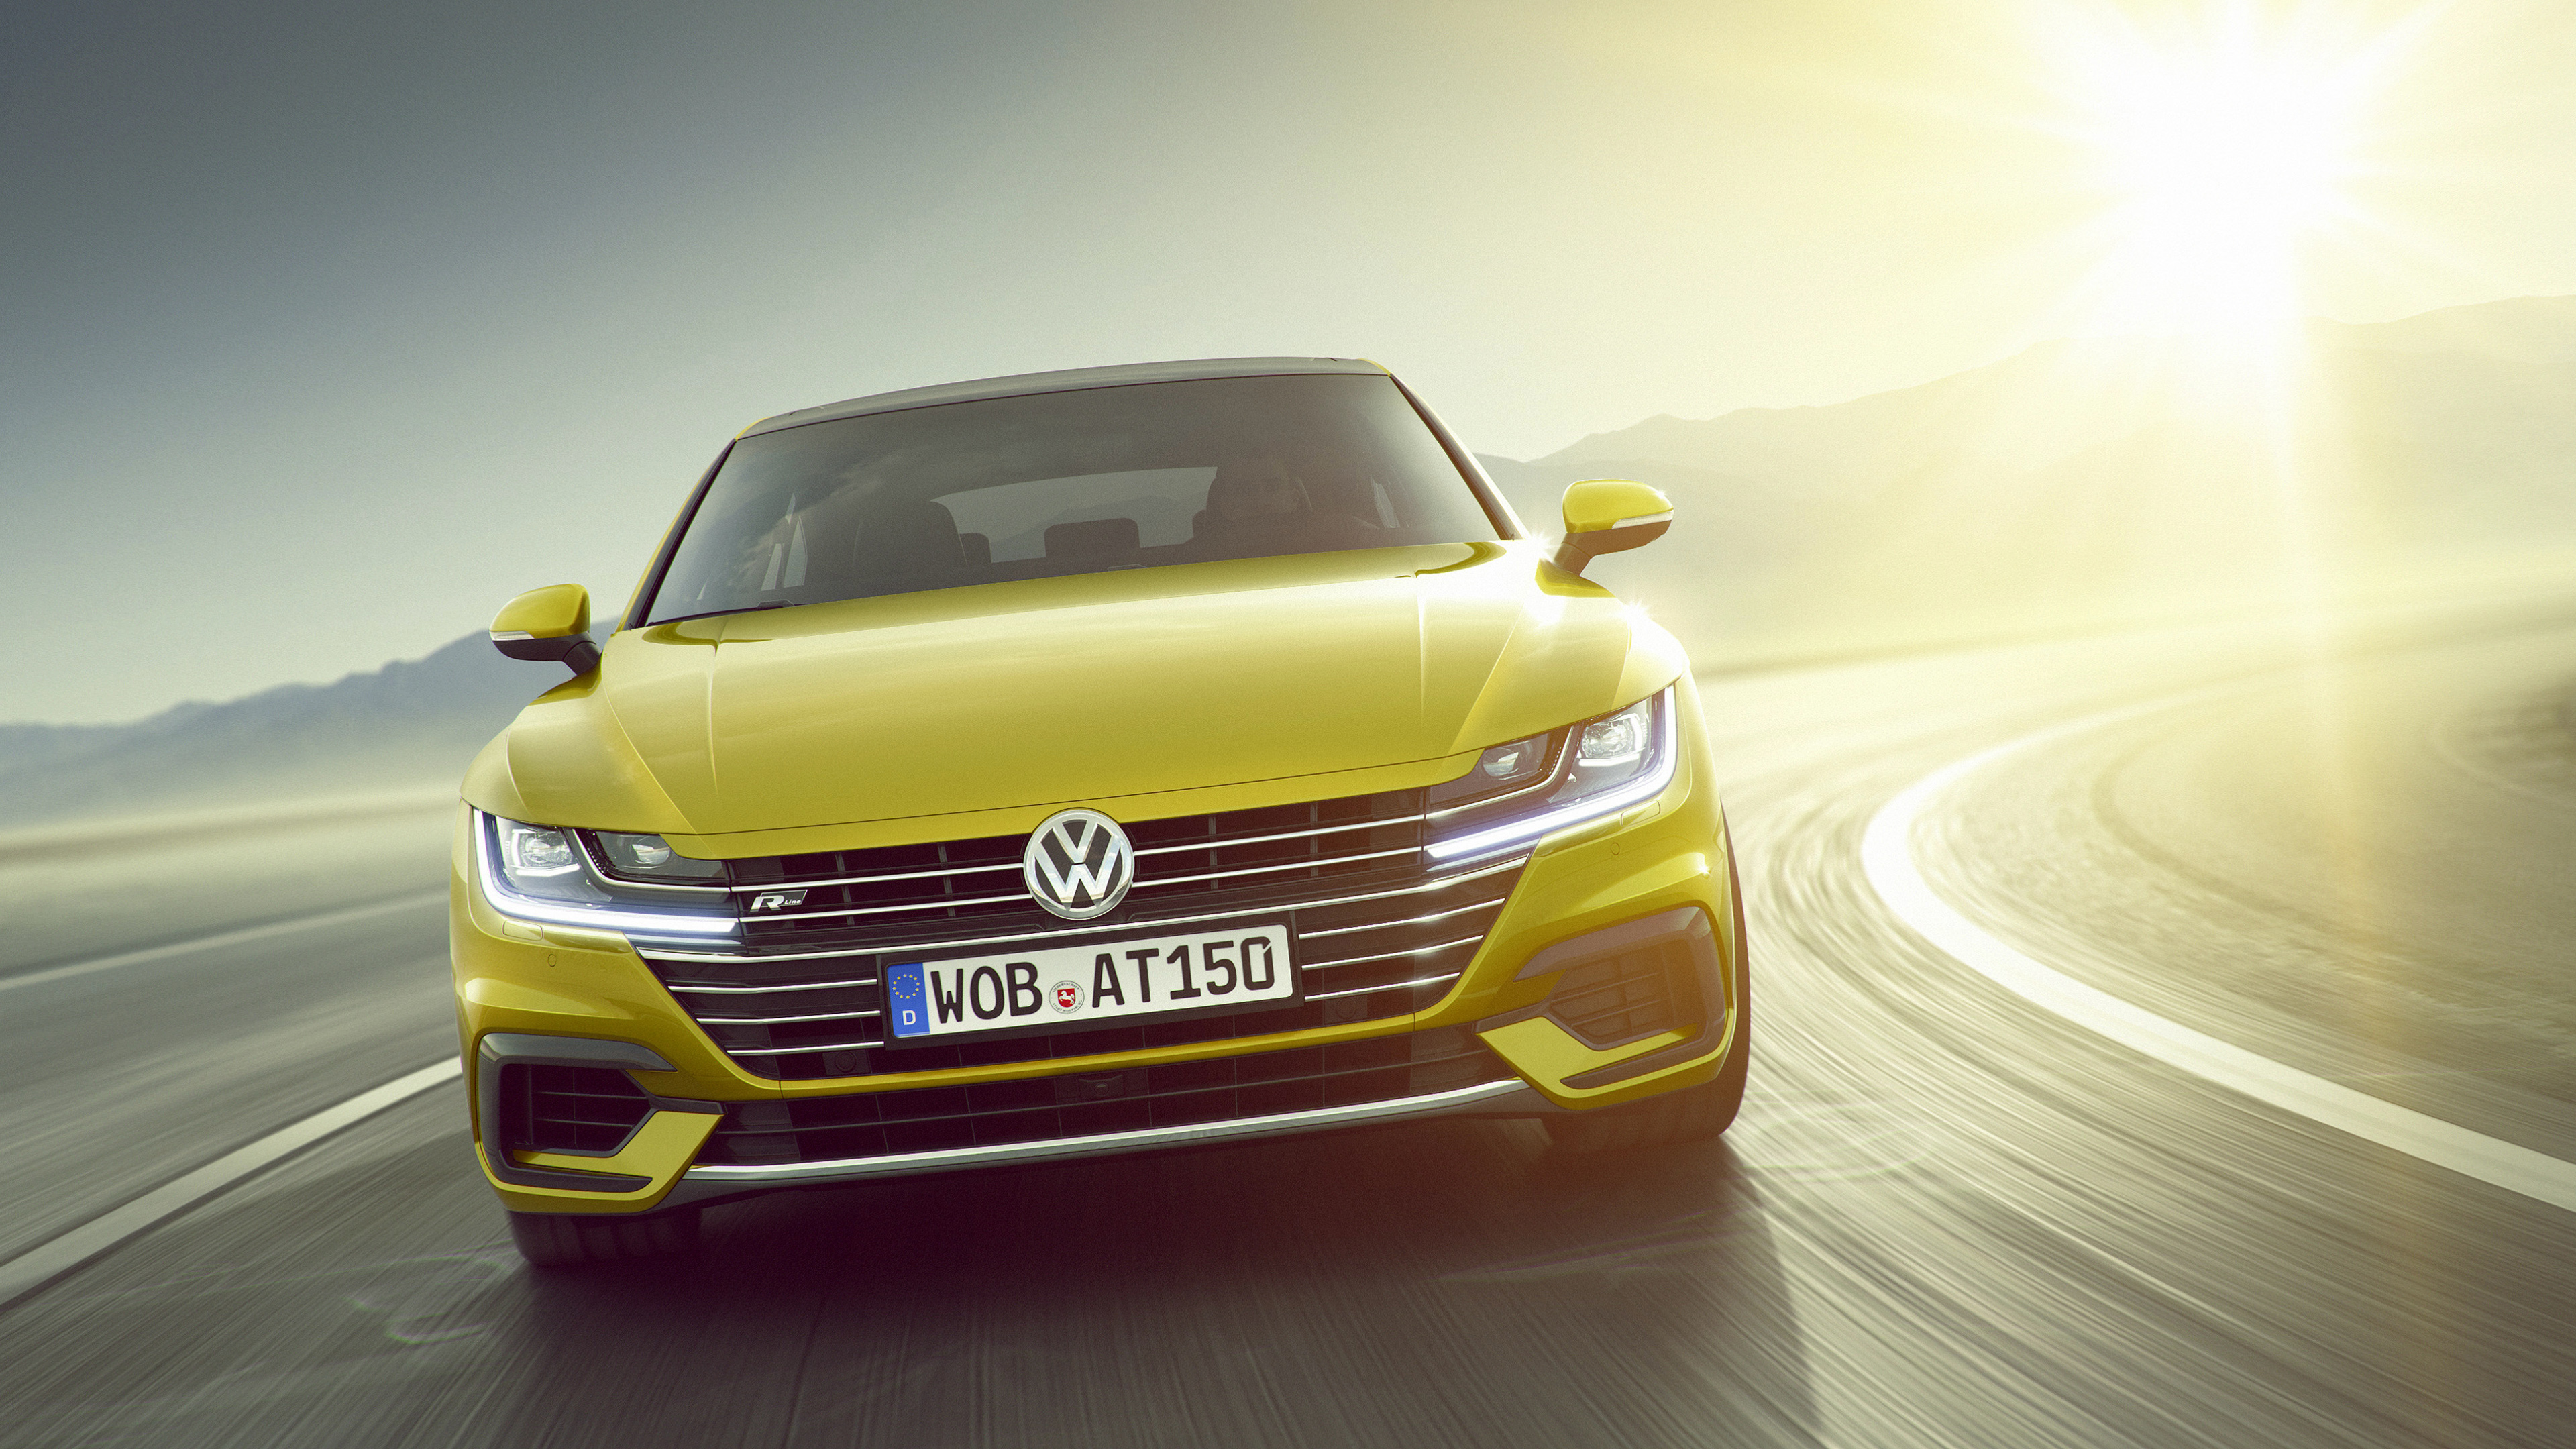 3840x2160 - Volkswagen Arteon Wallpapers 23